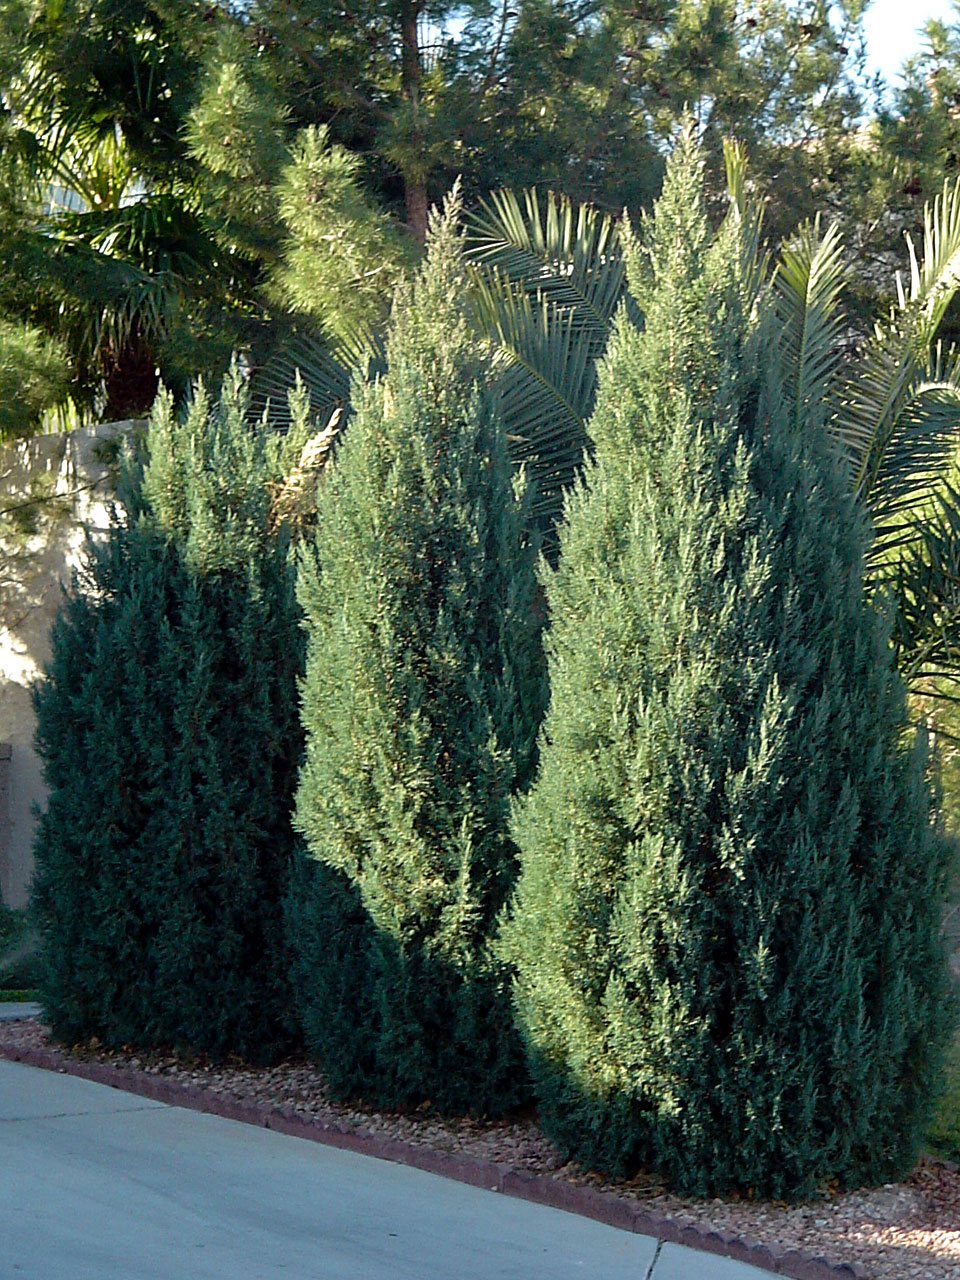 Landscaping Around A Group Of Trees : Junipers are such common landscape plants we can easily forget they